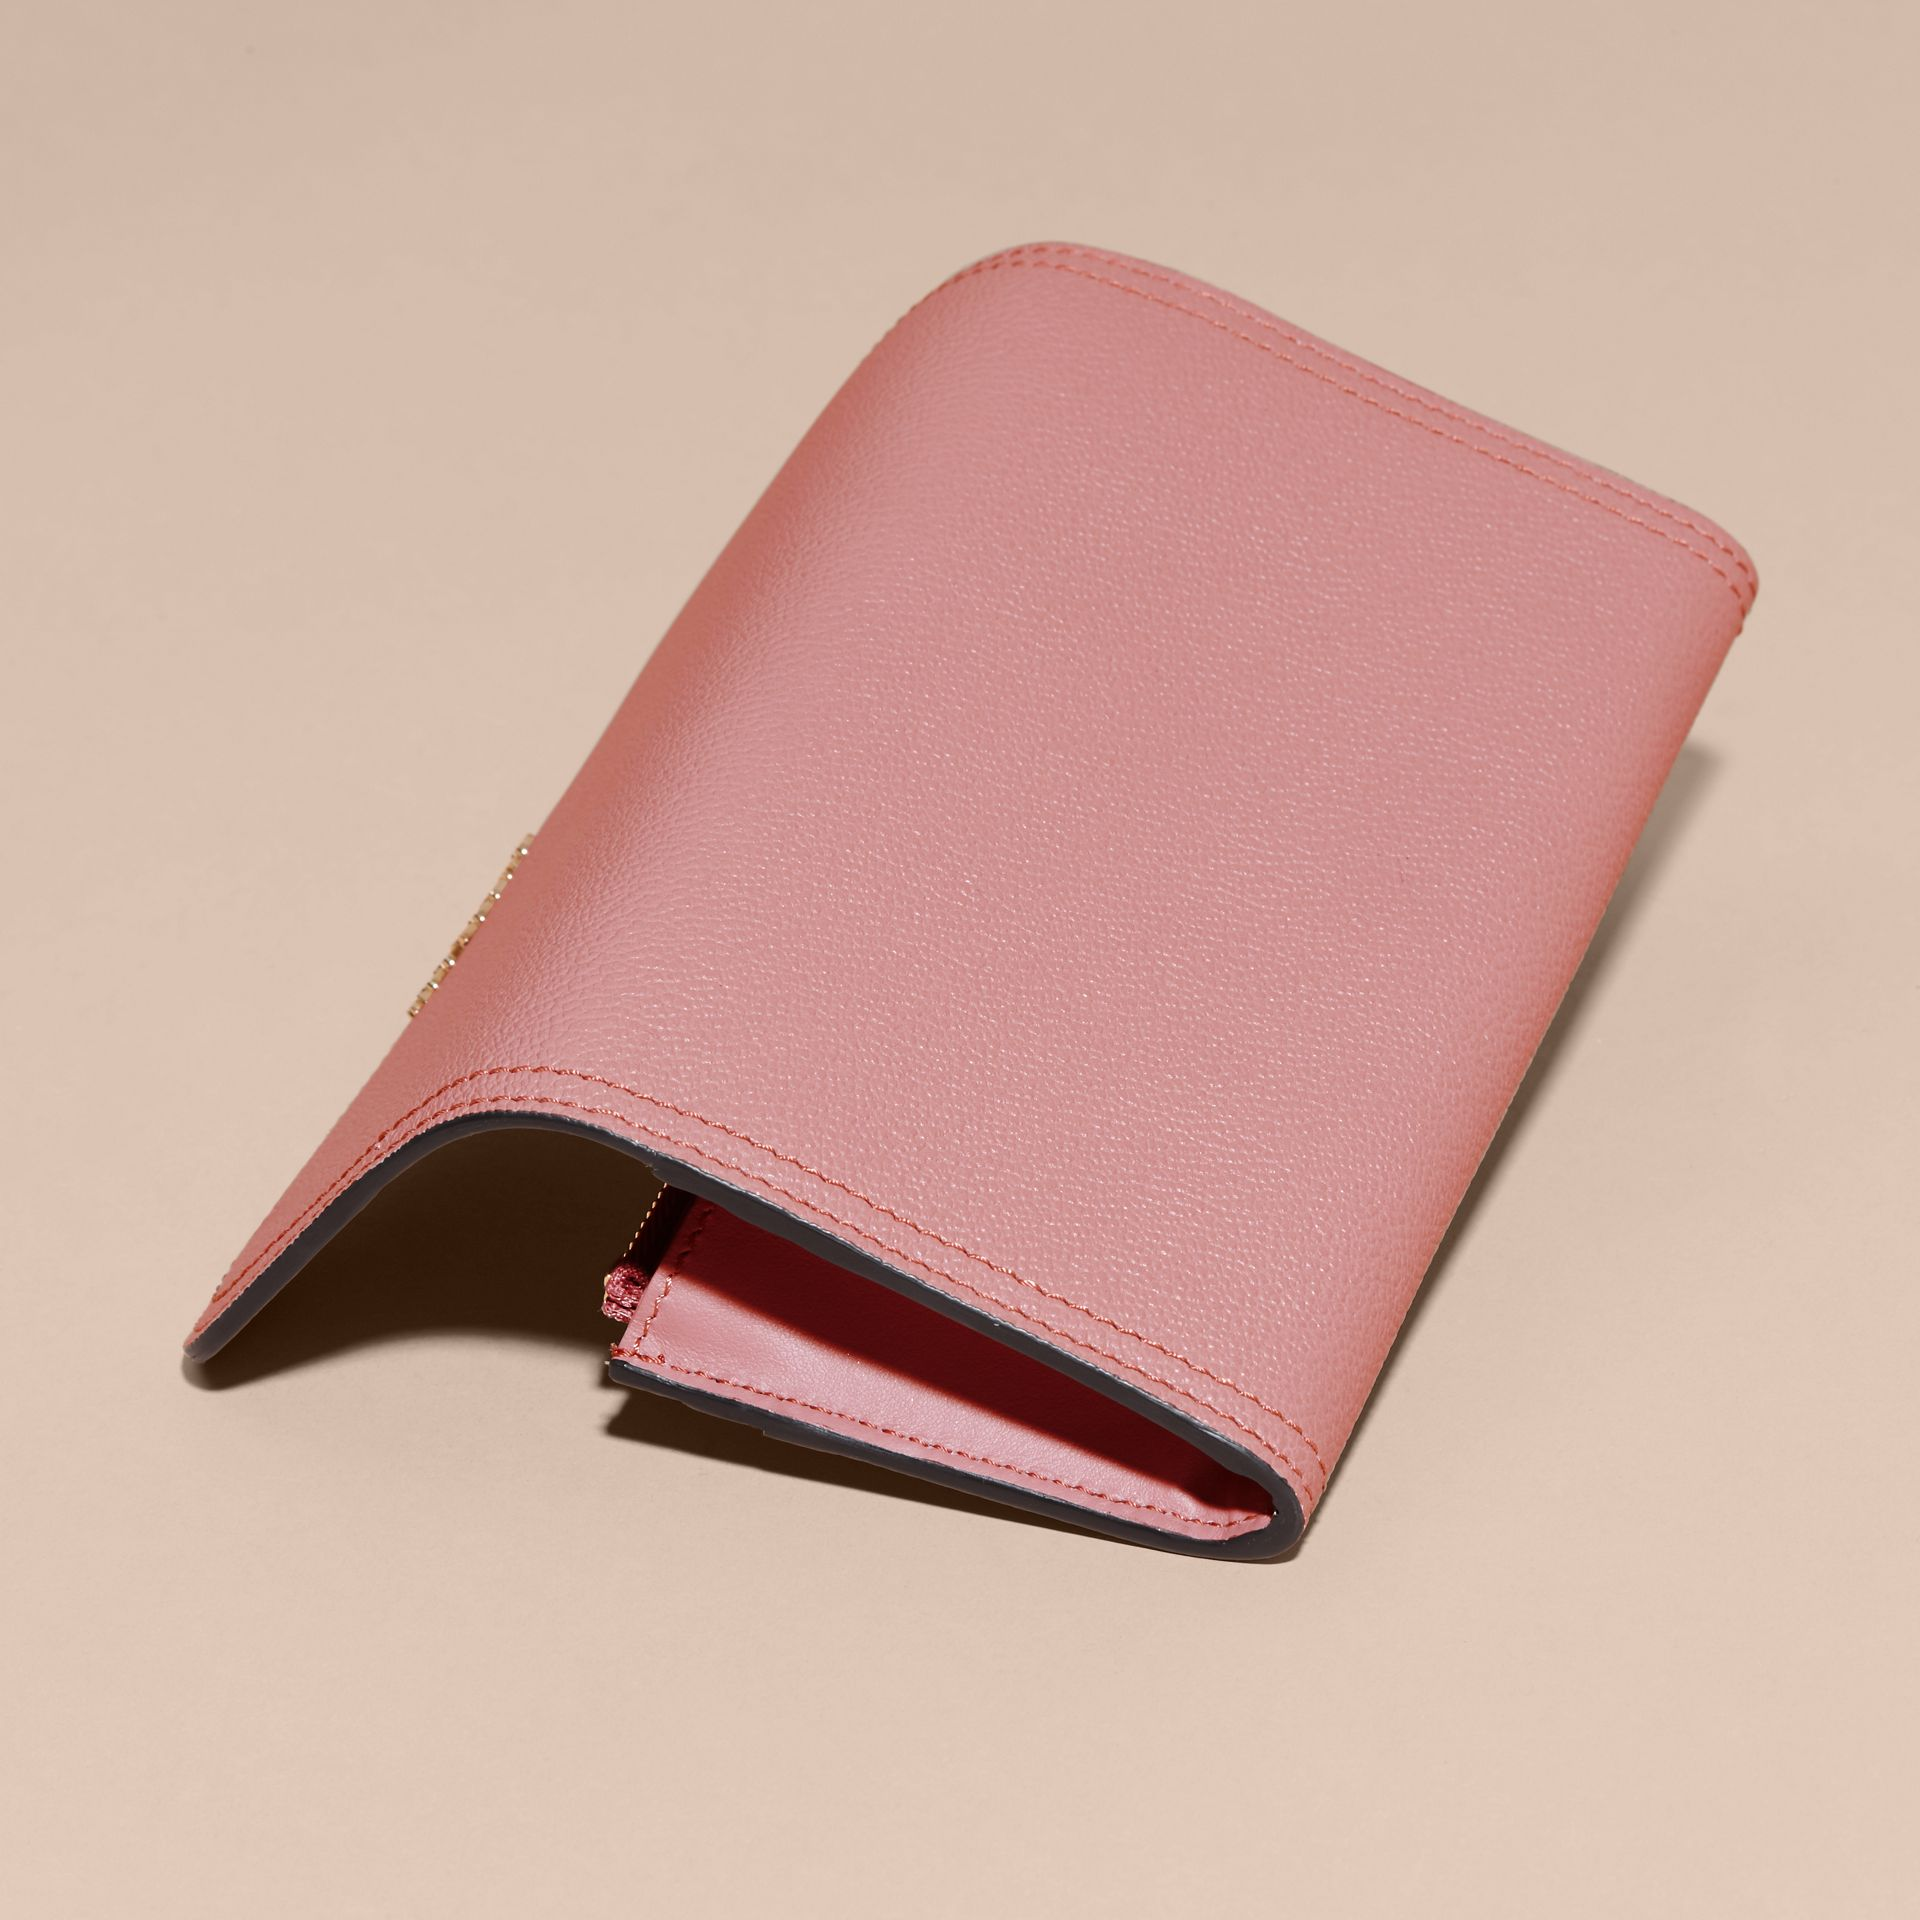 Grainy Leather Slim Continental Wallet in Dusty Pink - Women | Burberry Singapore - gallery image 5